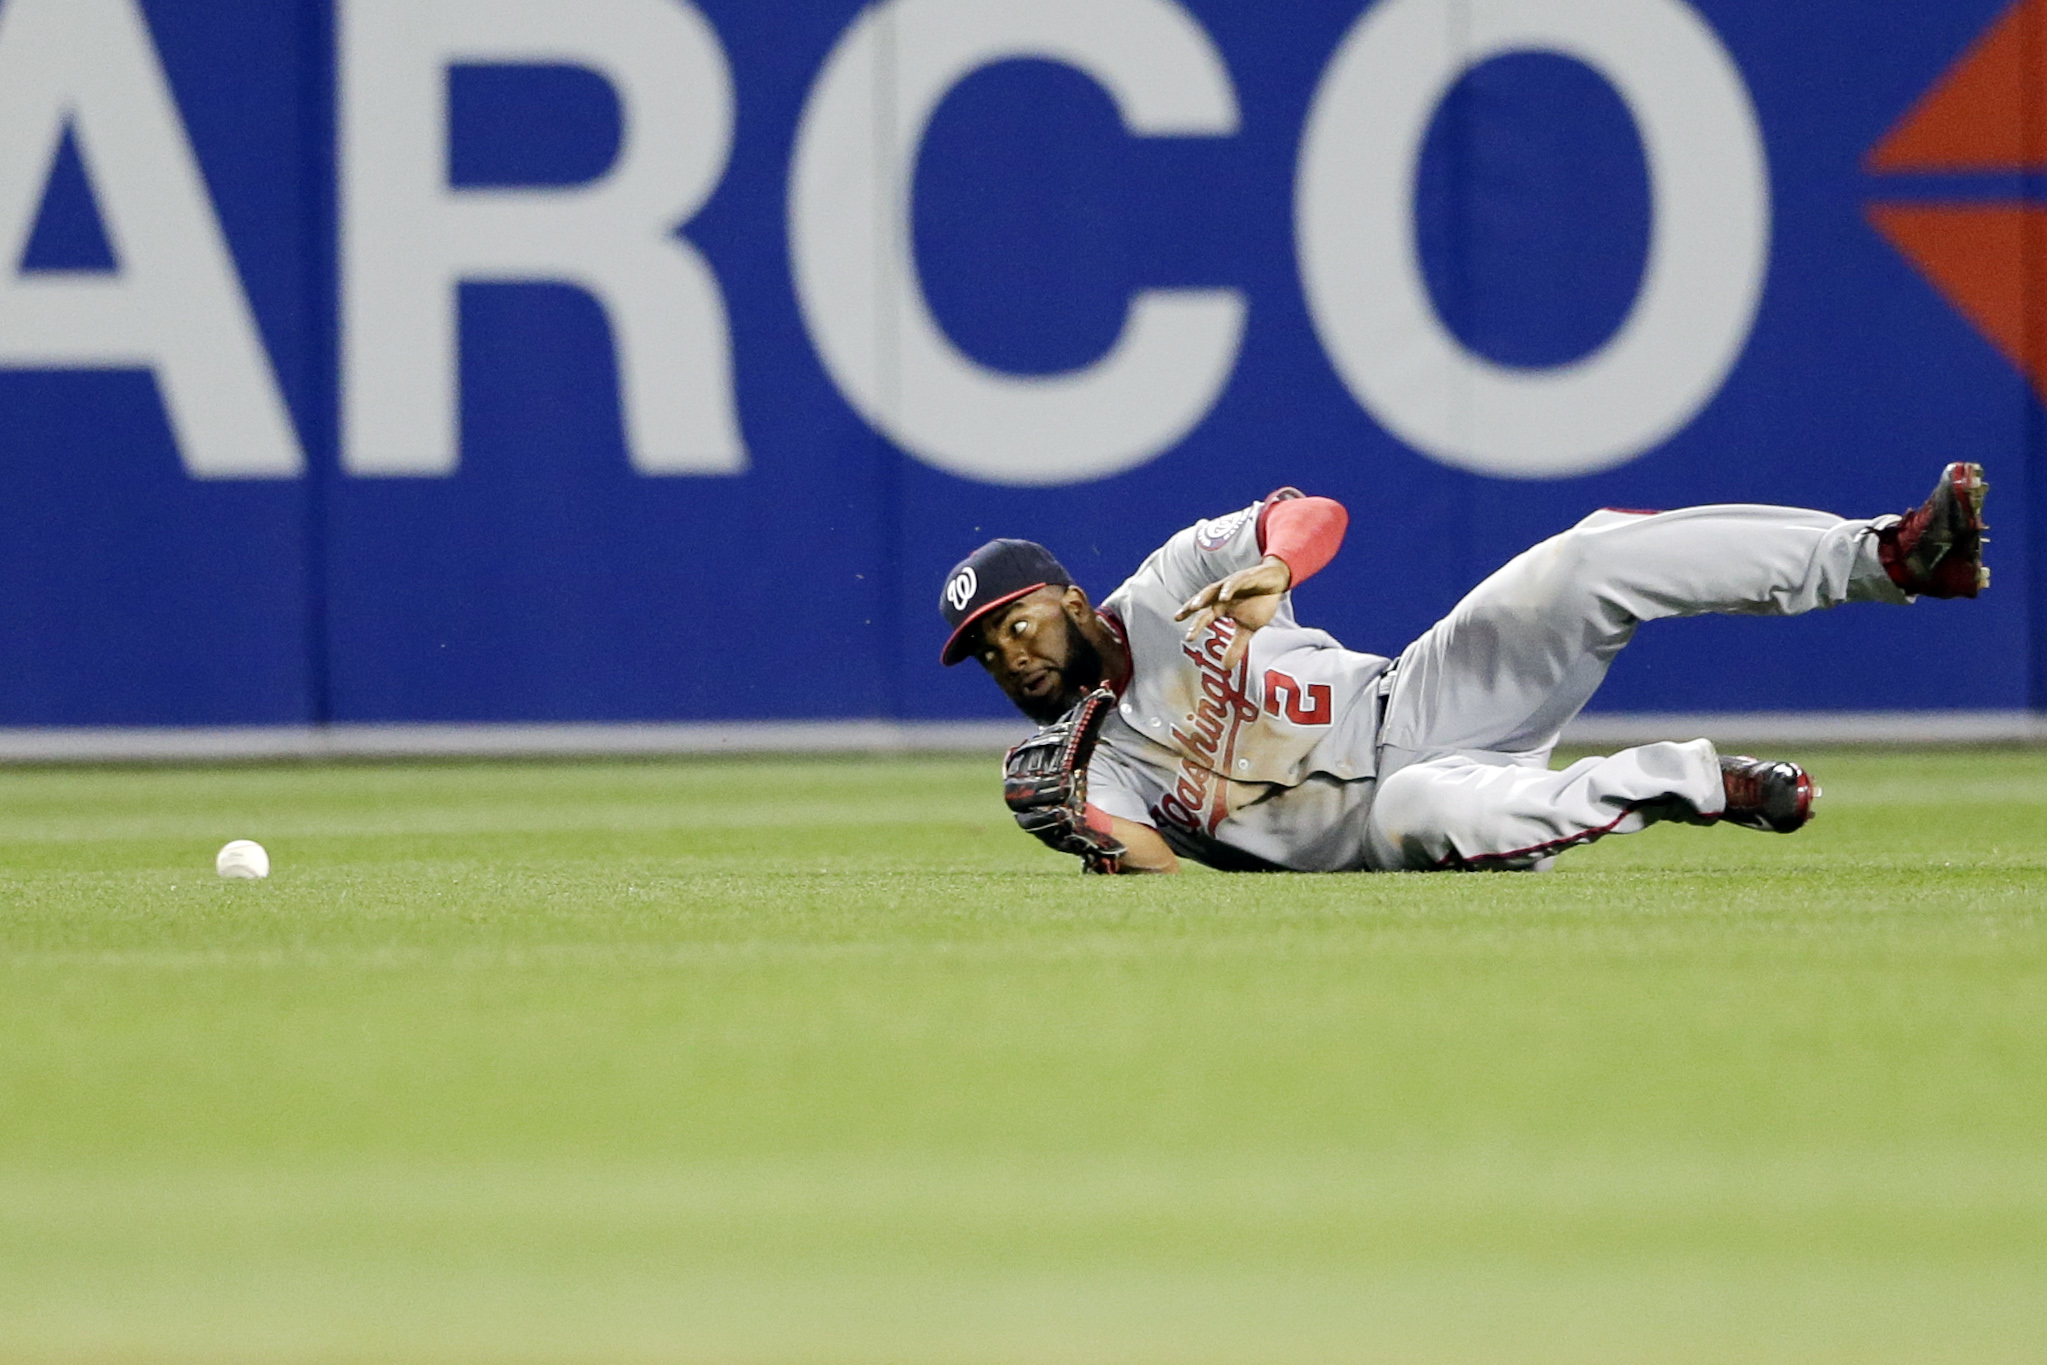 Washington Nationals center fielder Denard Span can't reach a single by San Diego Padres' Justin Upton during the sixth inning in a baseball game Friday, May 15, 2015, in San Diego. (AP Photo/Gregory Bull)